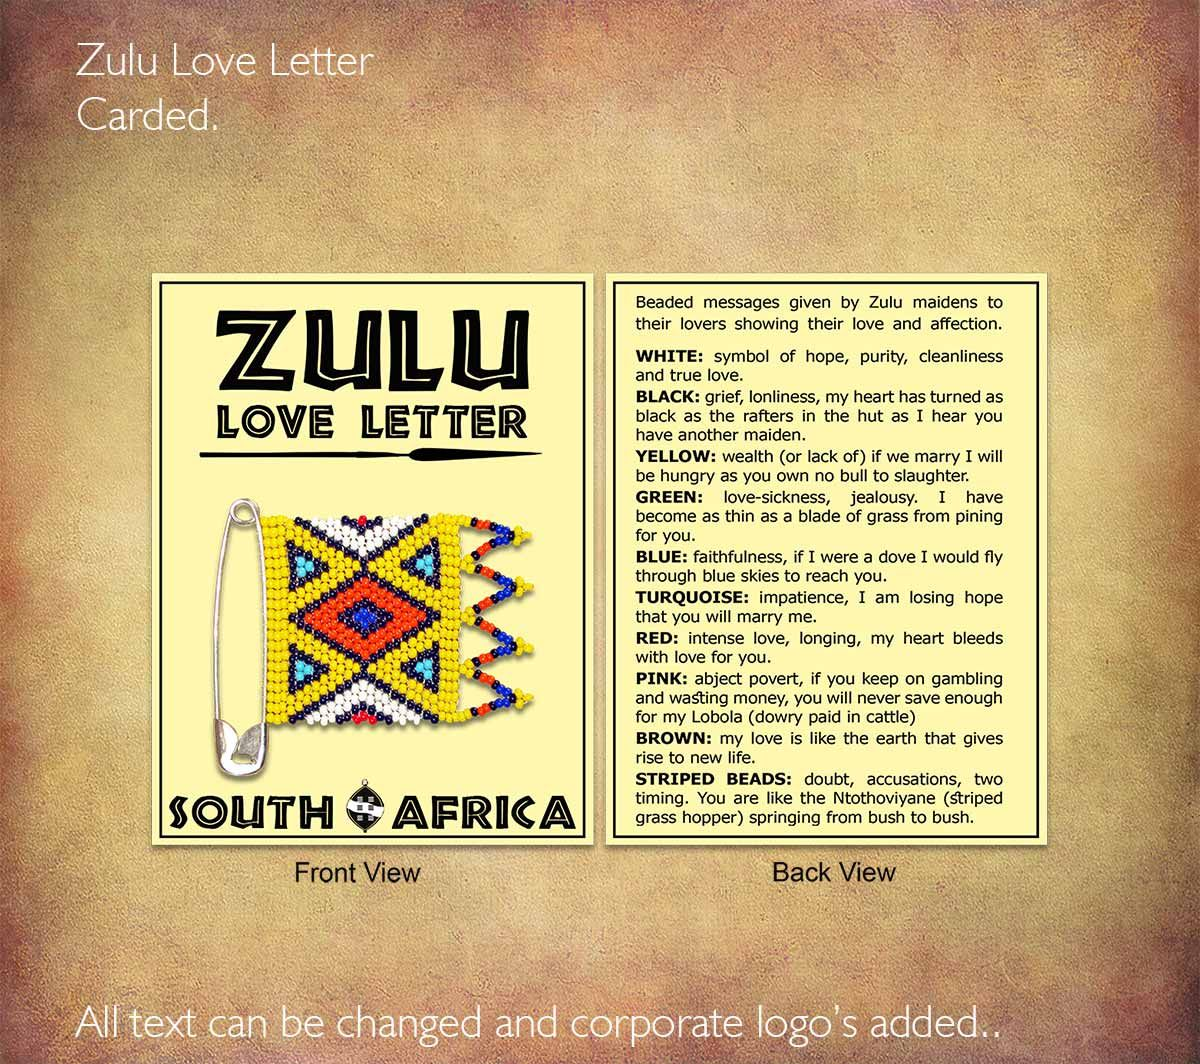 Zulu Love Letter Carded Shows The Meaning Of Each Bead Colour We Can Also Adapt This Card And Add Any Corporate Logo Or Text